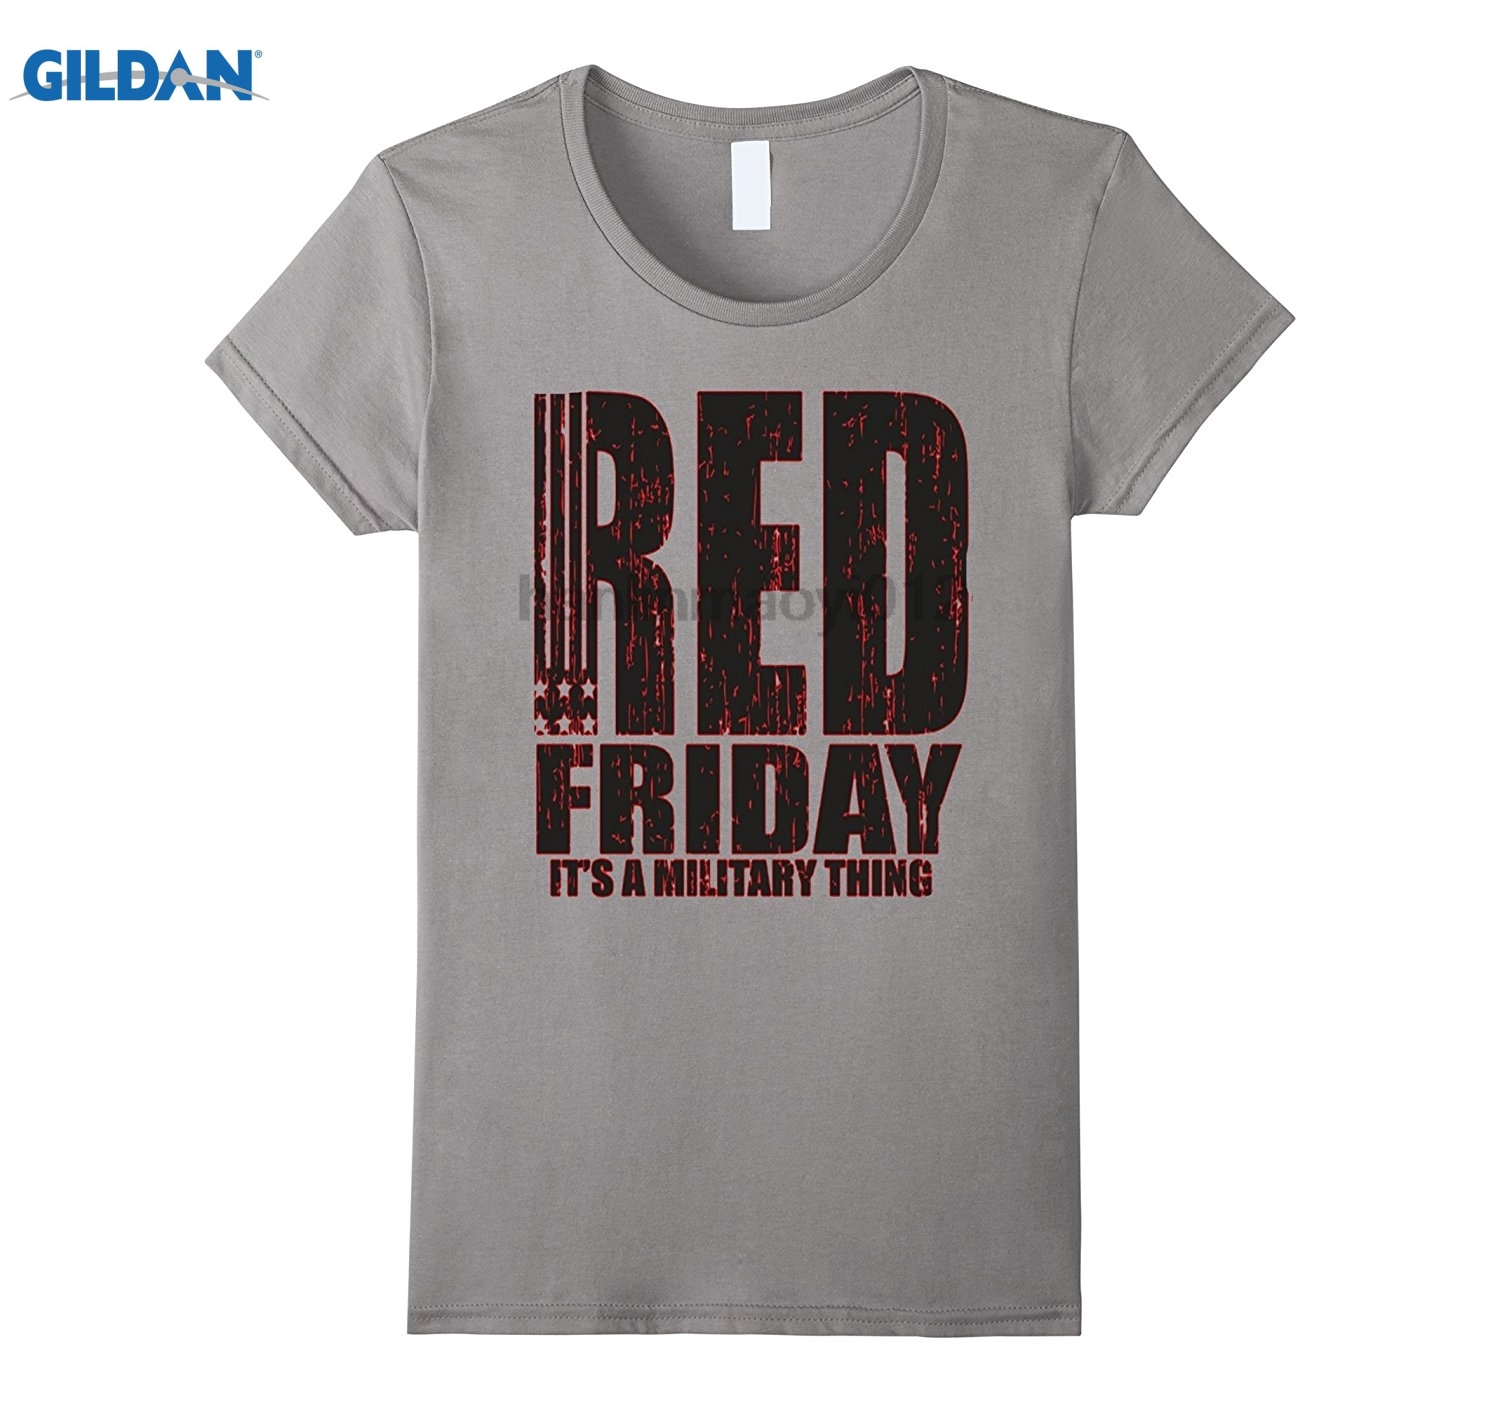 GILDAN R.E.D Friday T-shirt Hot Womens T-shirt